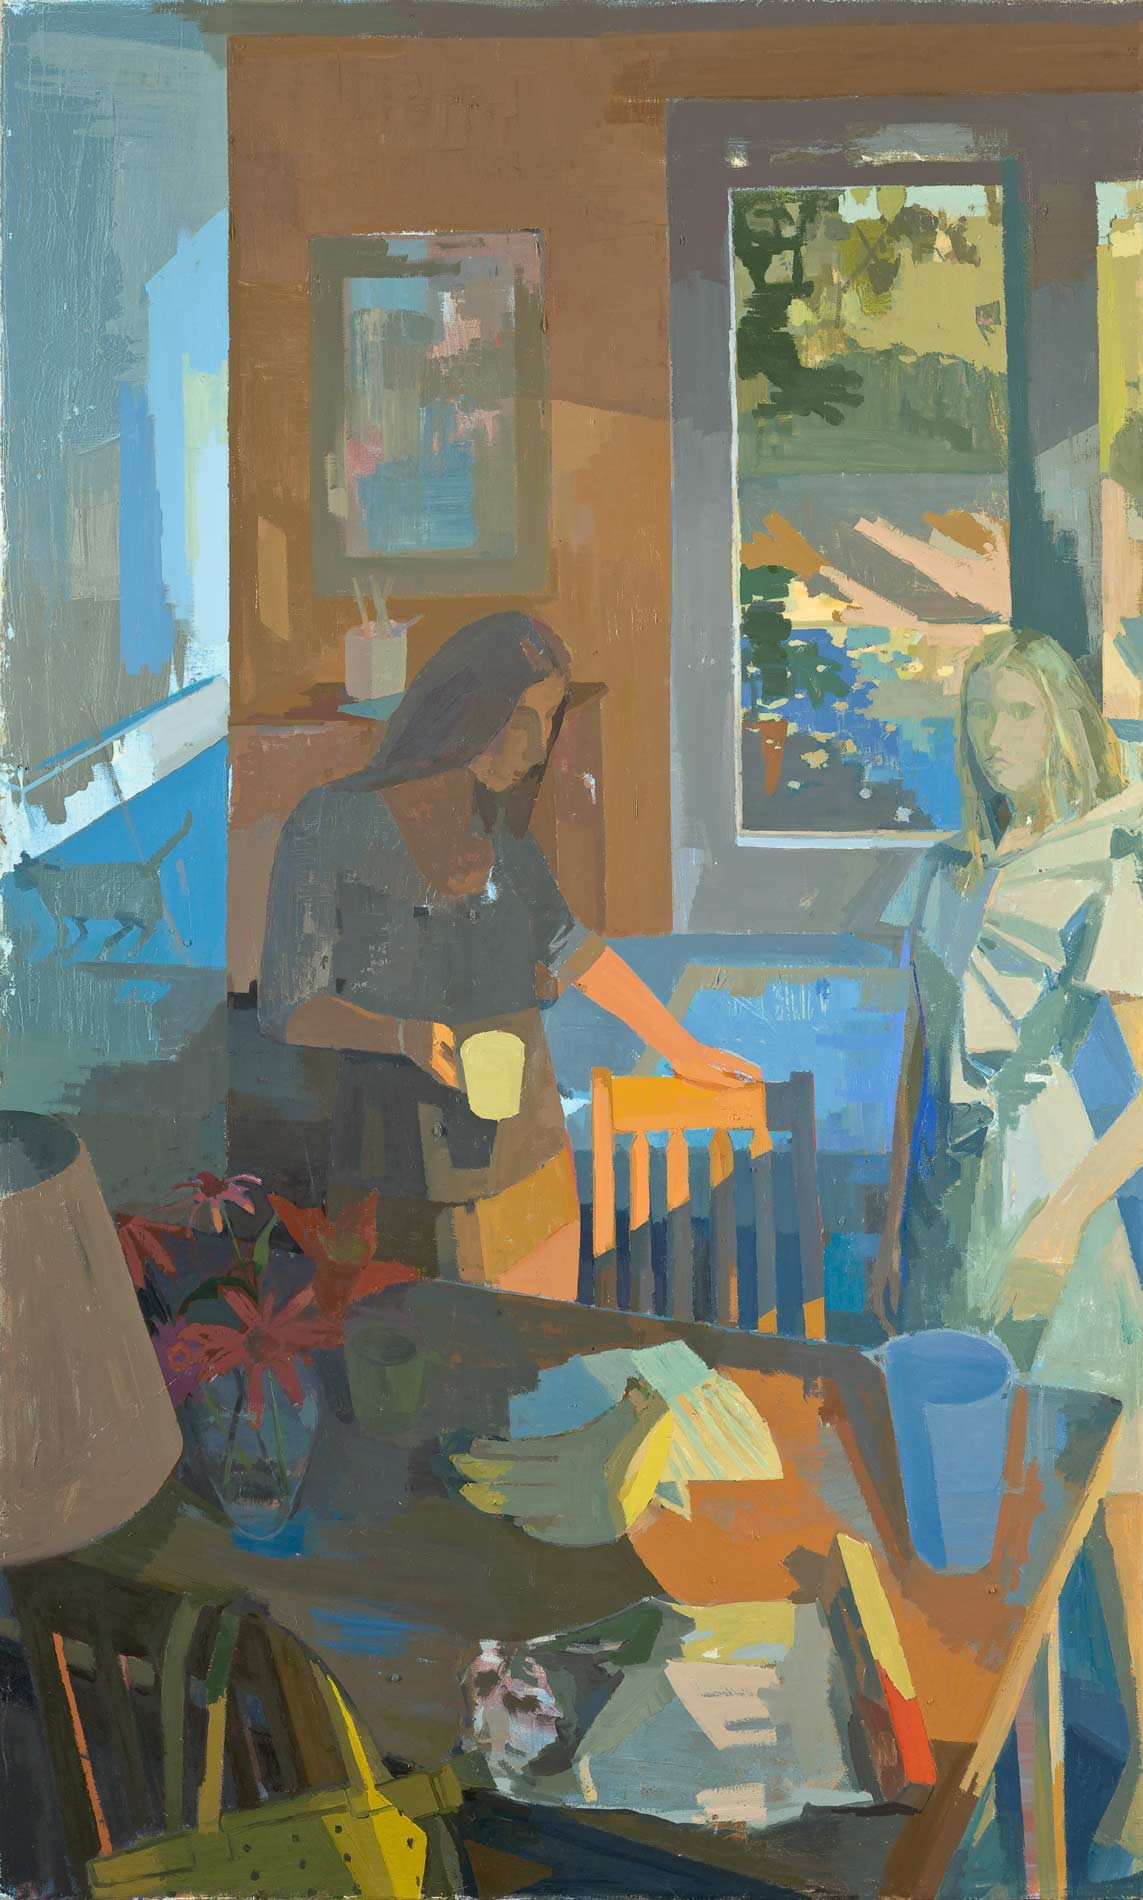 Susan Lichtman, Sisters, 66 × 45 inches, oil on canvas, 2014 (courtesy of the ar